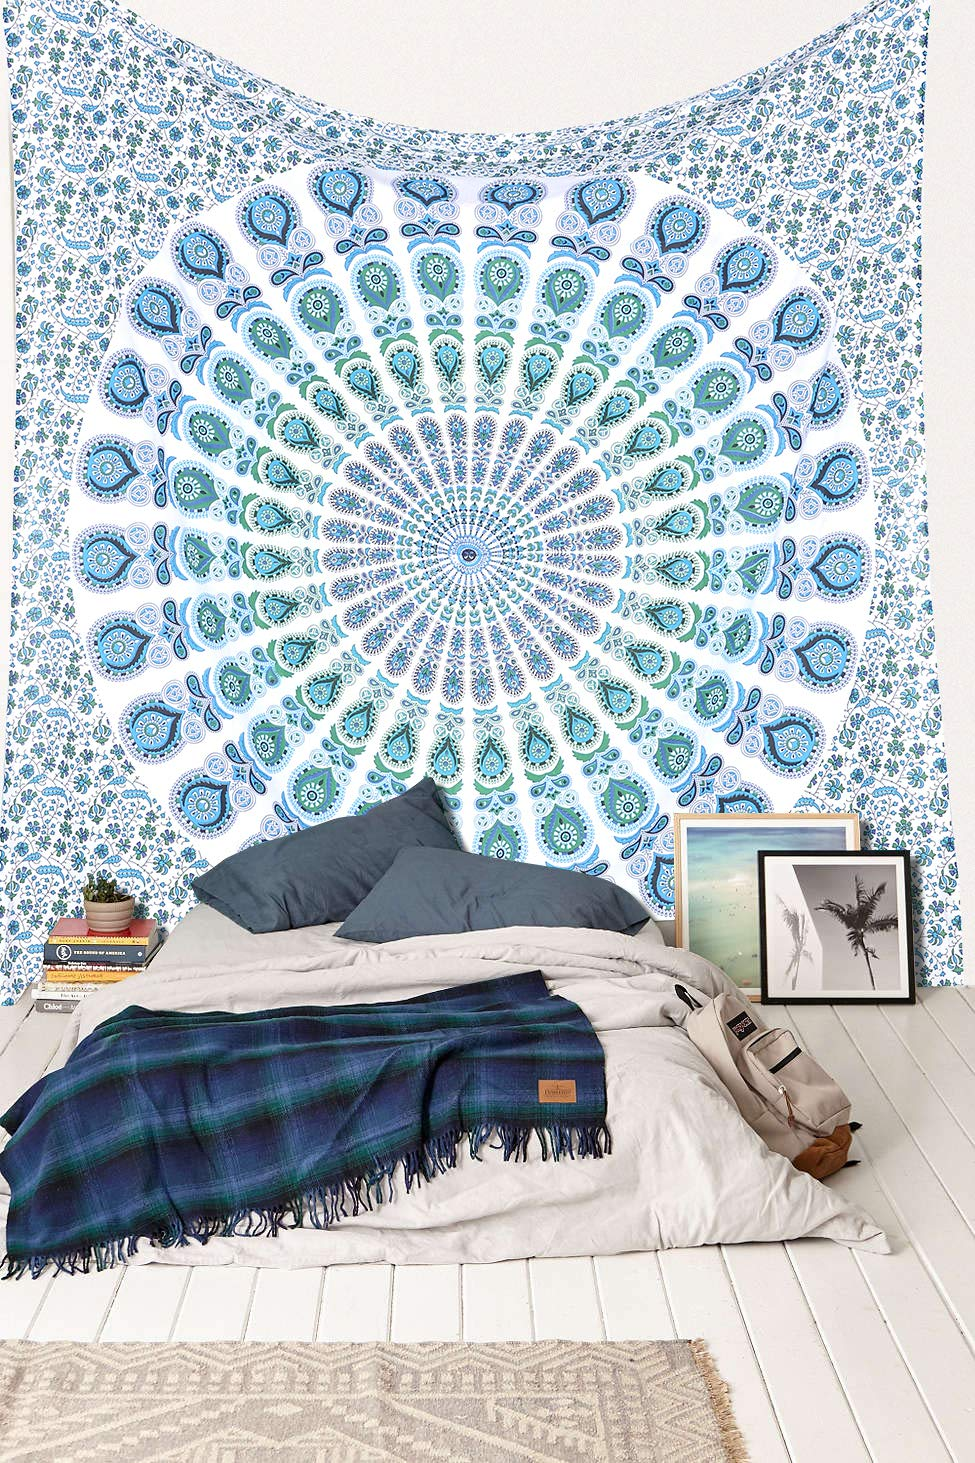 Bedspread Decorative Indian Mirchi Wall Hanging Queen and King Size Tapestry Ambika Designs 100/% Cotton Mandala Art Handmade Hippi Bohemian